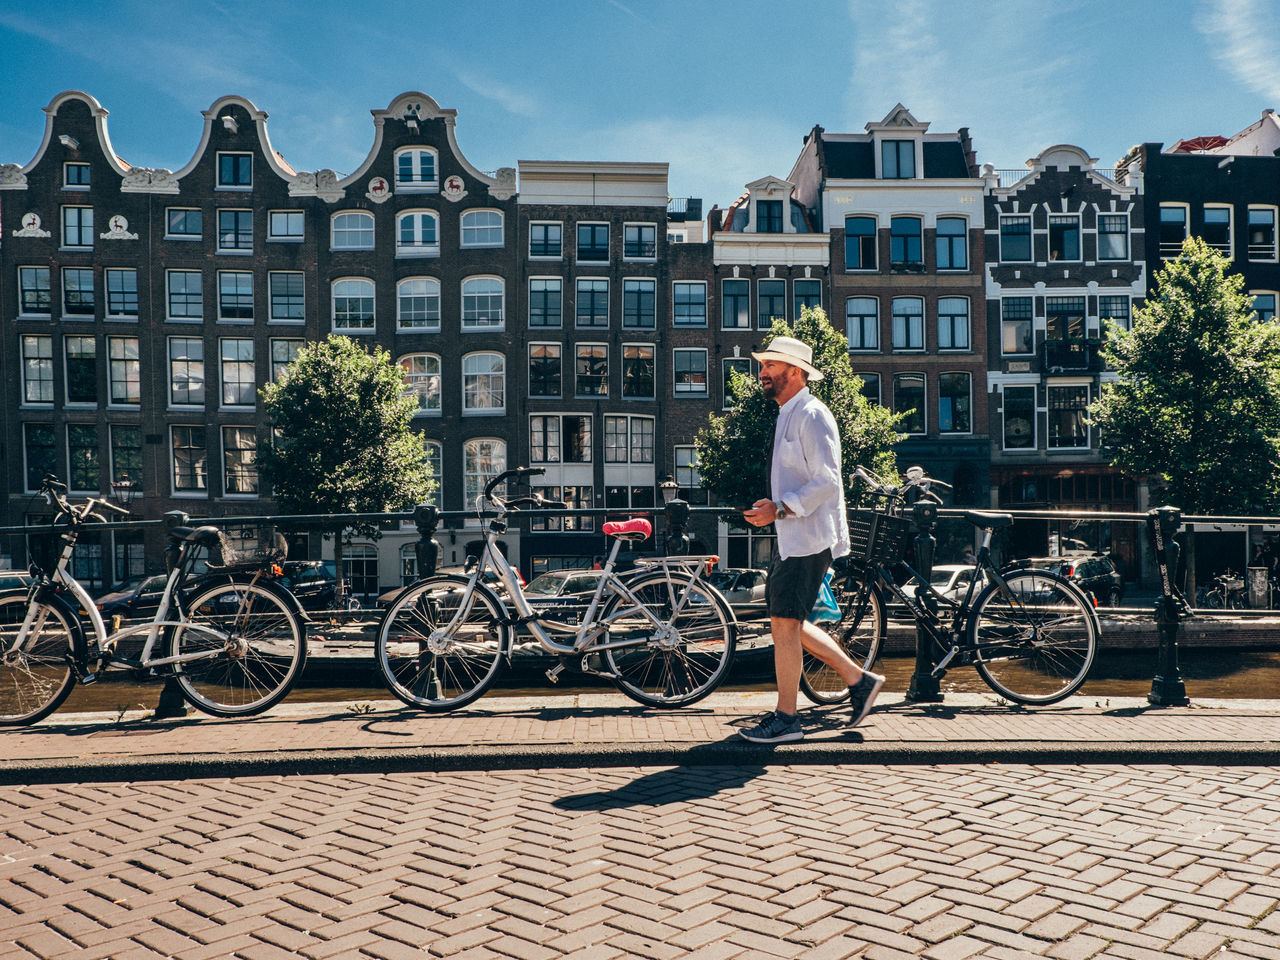 Adult Amsterdam Architecture Bicycle Building Exterior Built Structure Canal Casual Clothing City City Life Day Full Length Leisure Activity Lifestyles Mode Of Transport Netherlands One Person Outdoors Real People Sky Sunlight The Street Photographer - 2017 EyeEm Awards Transportation